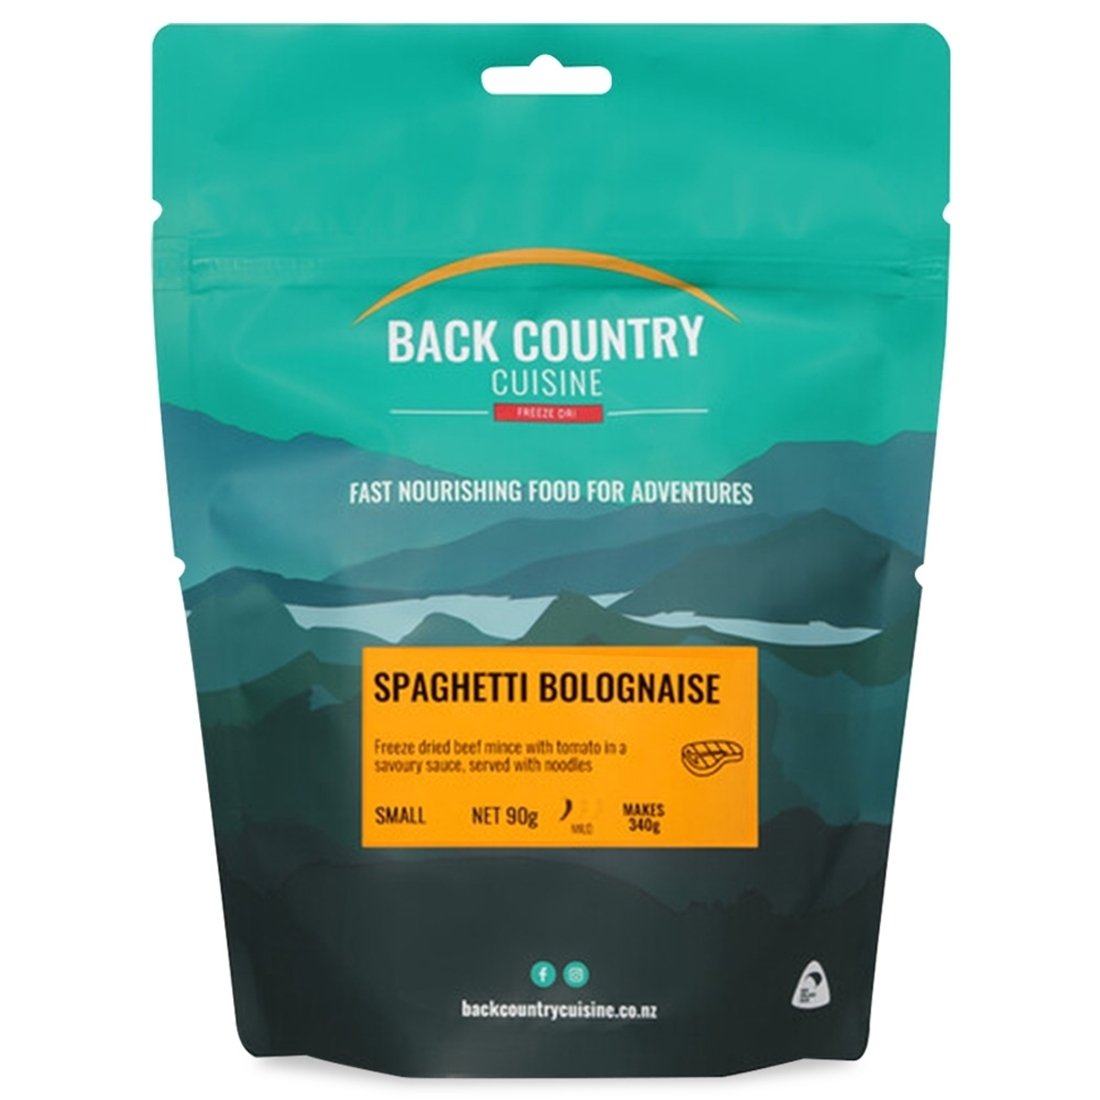 Back Country Cuisine Spaghetti Bolognaise Small Serve 90g